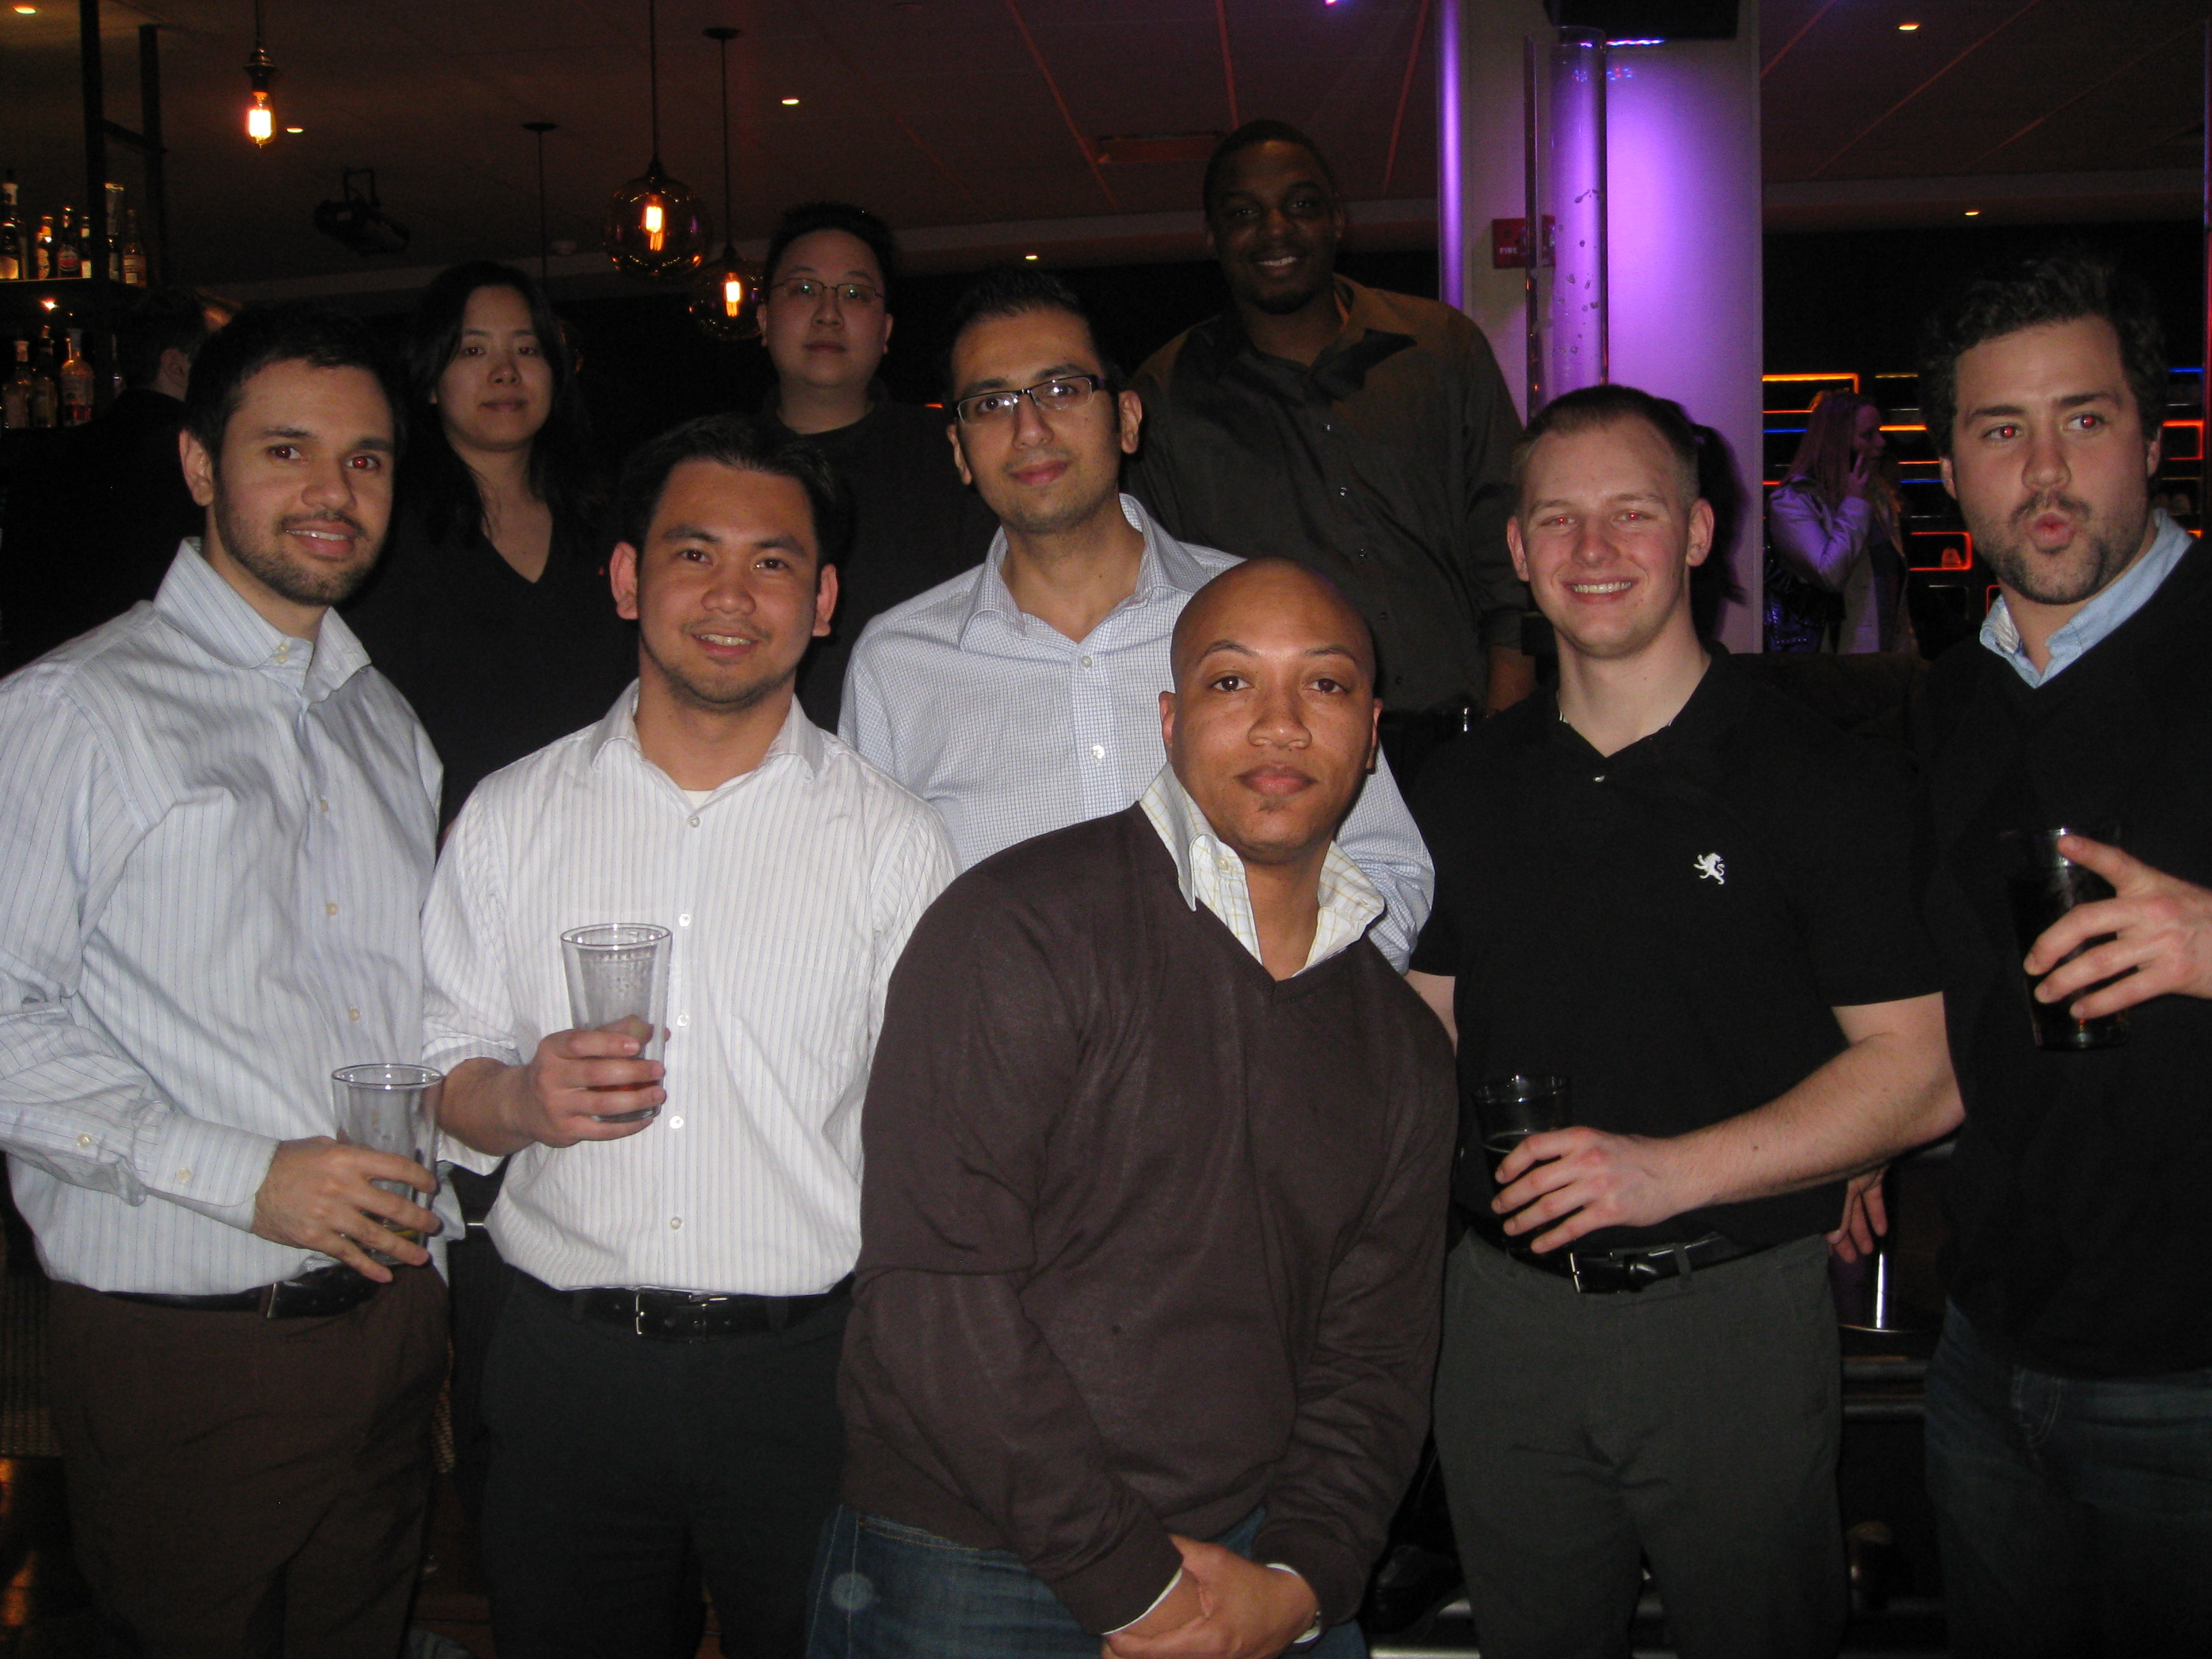 The AvePoint Team at Frames Bowling Lounge NYC